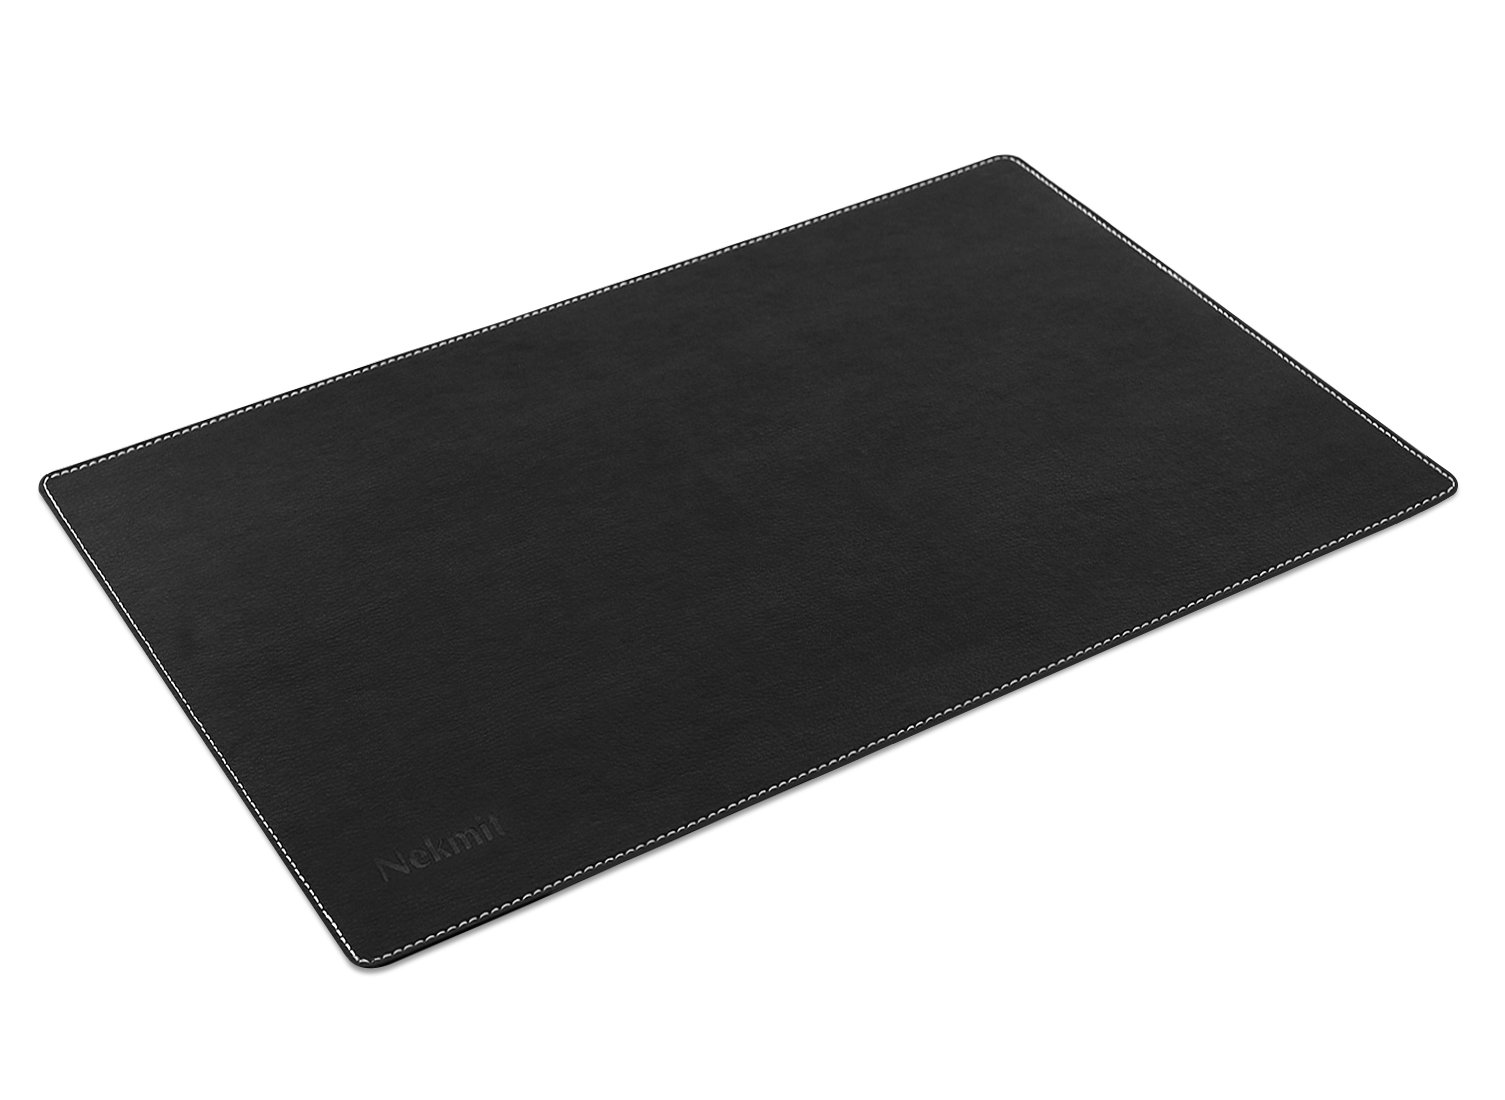 Nekmit Leather Desk Blotter 17 Quot X12 Quot Black 17 Quot X12 Quot No